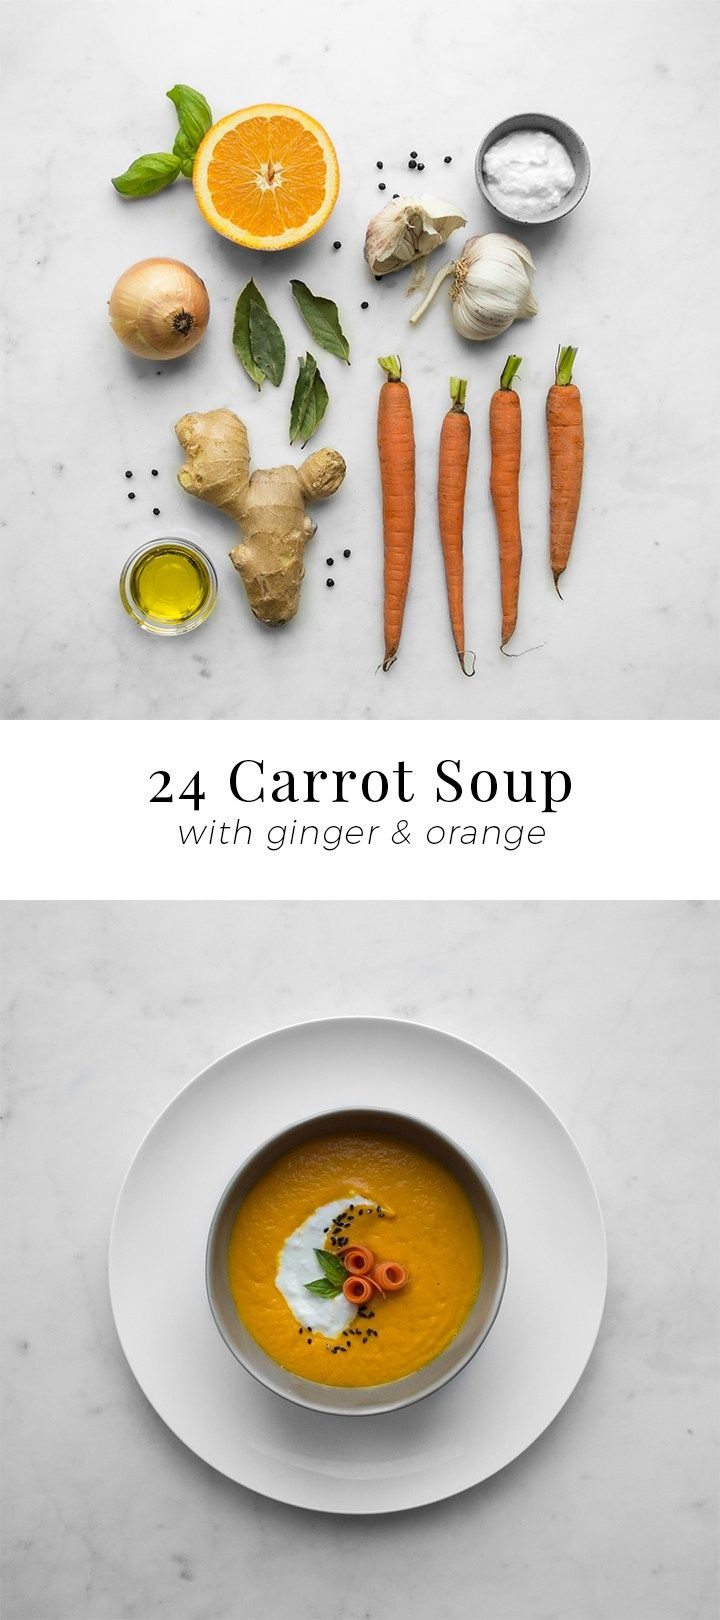 24 Carrot, Ginger and Orange Soup | Chef Sous Chef